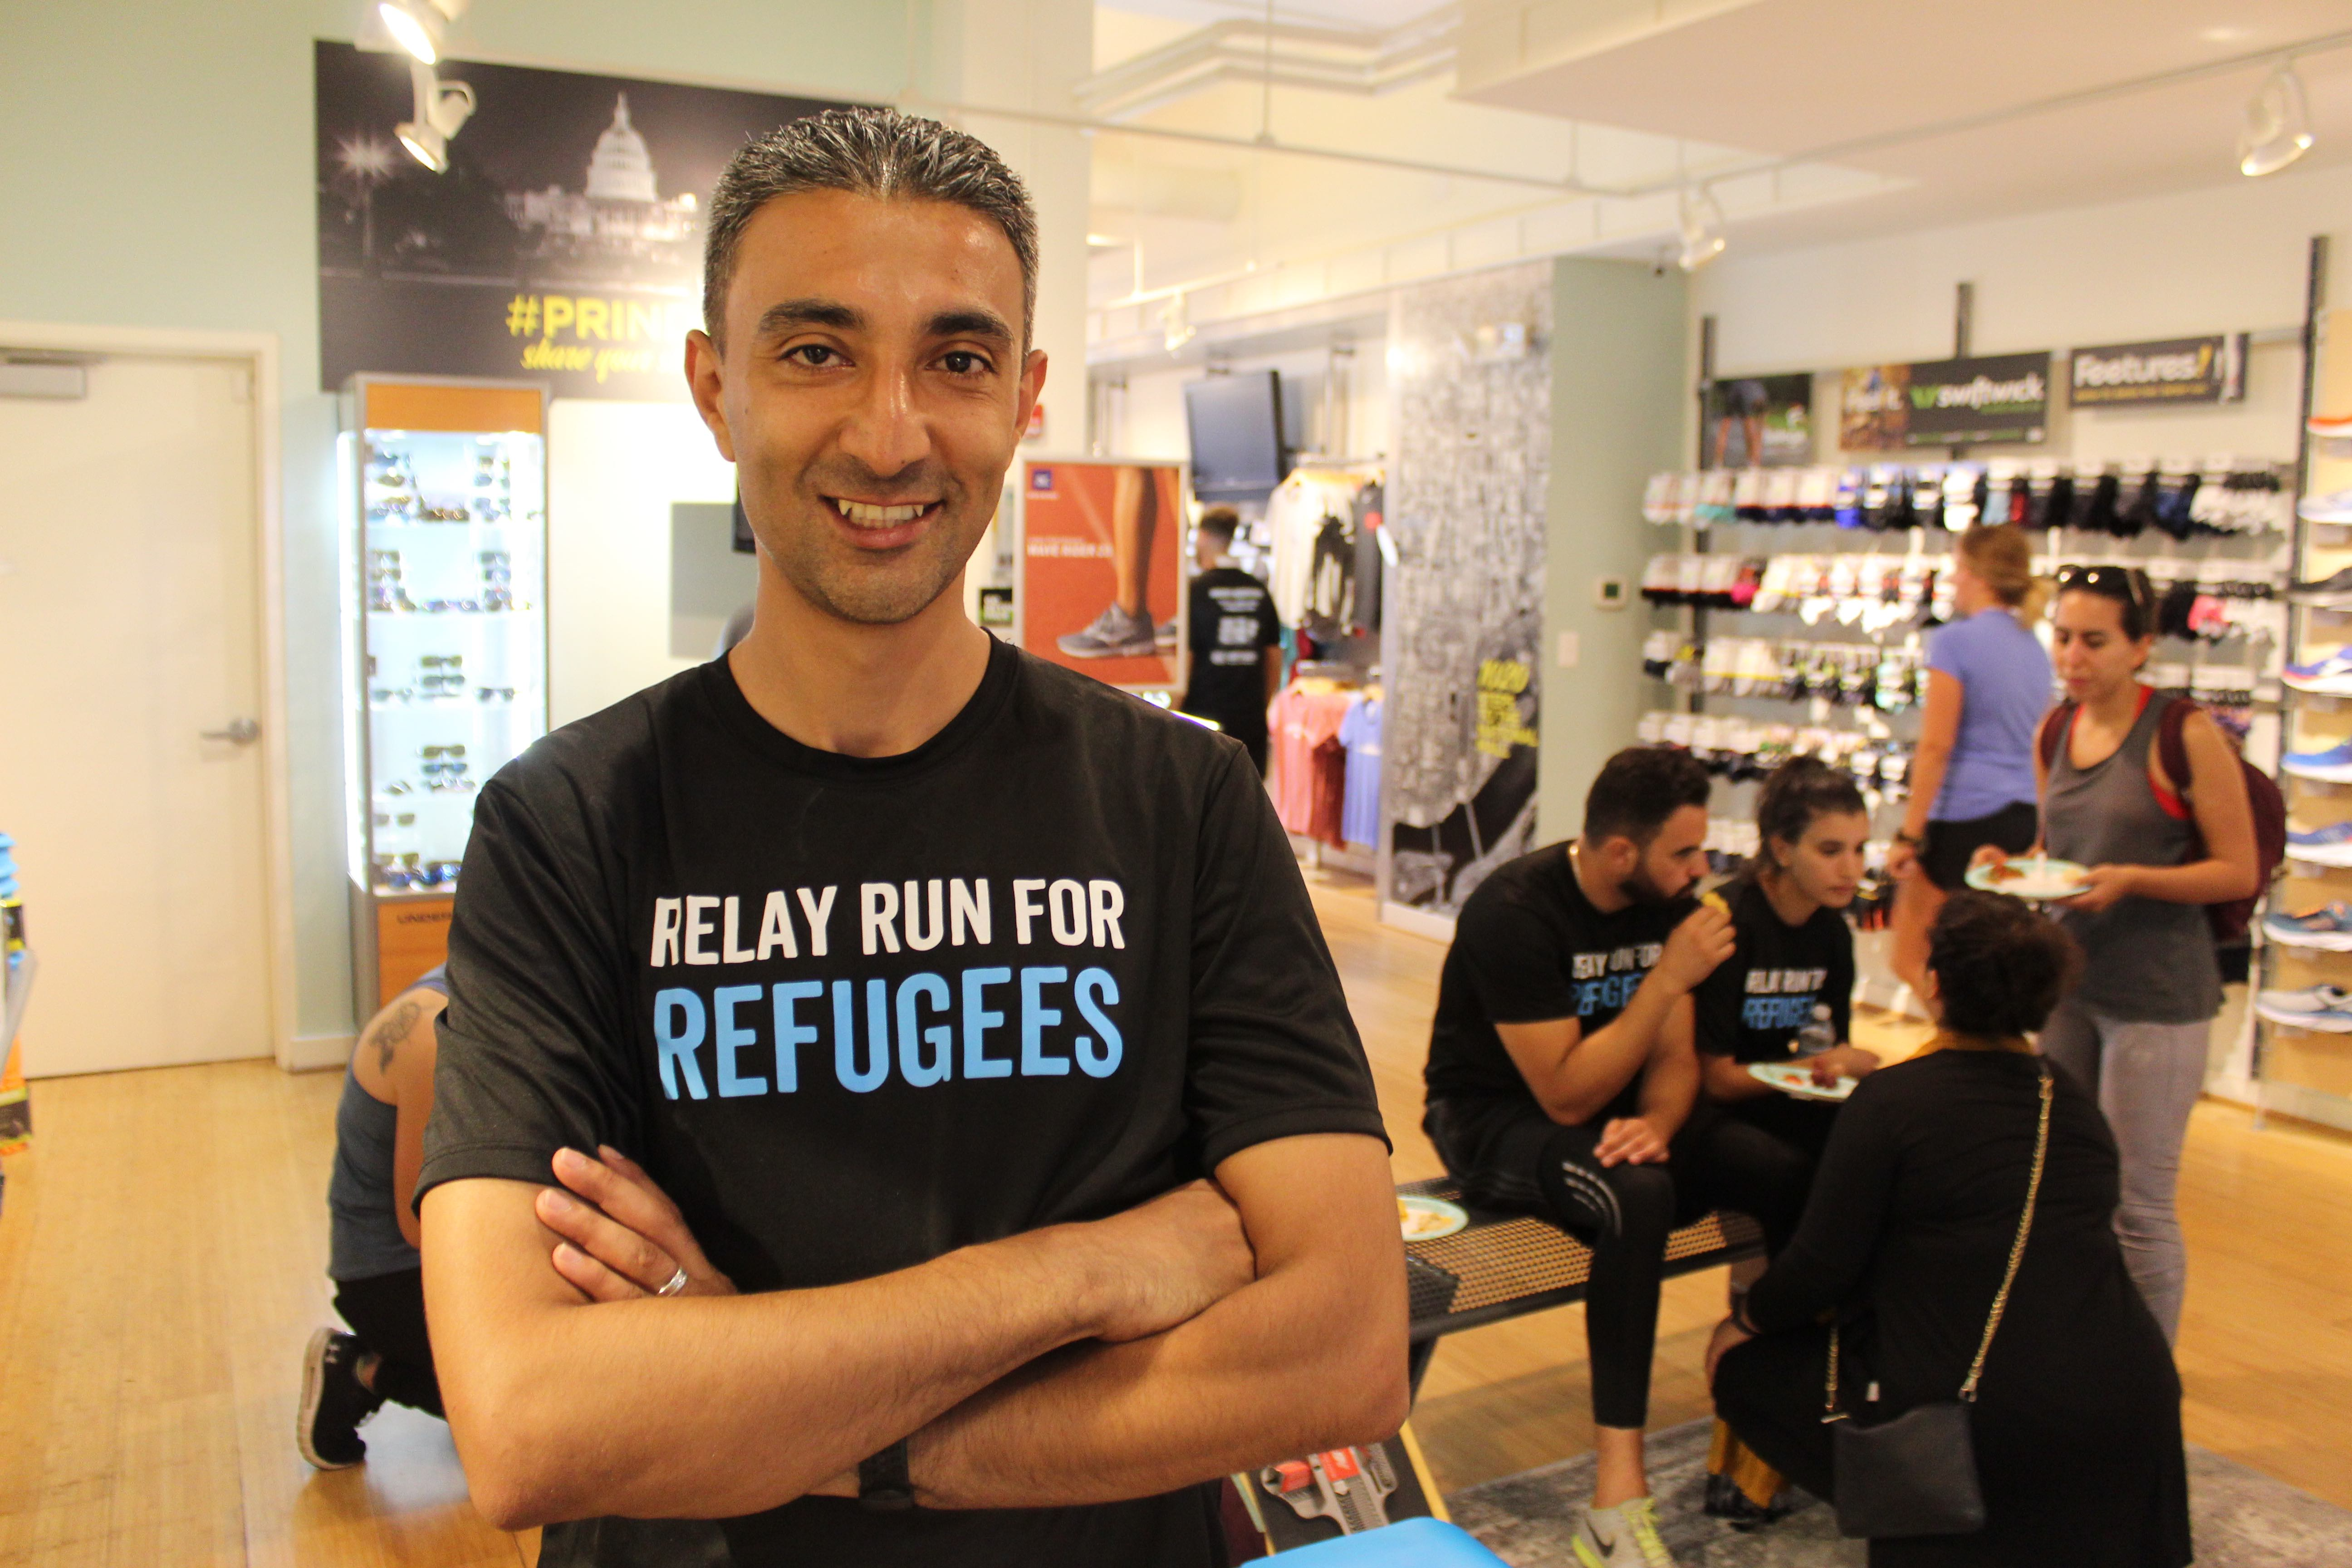 Rami Khalaf, the manager of the Relay Run for Refugees, after completing the marathon and arriving in Washington (MEE/Sheren Khalel)